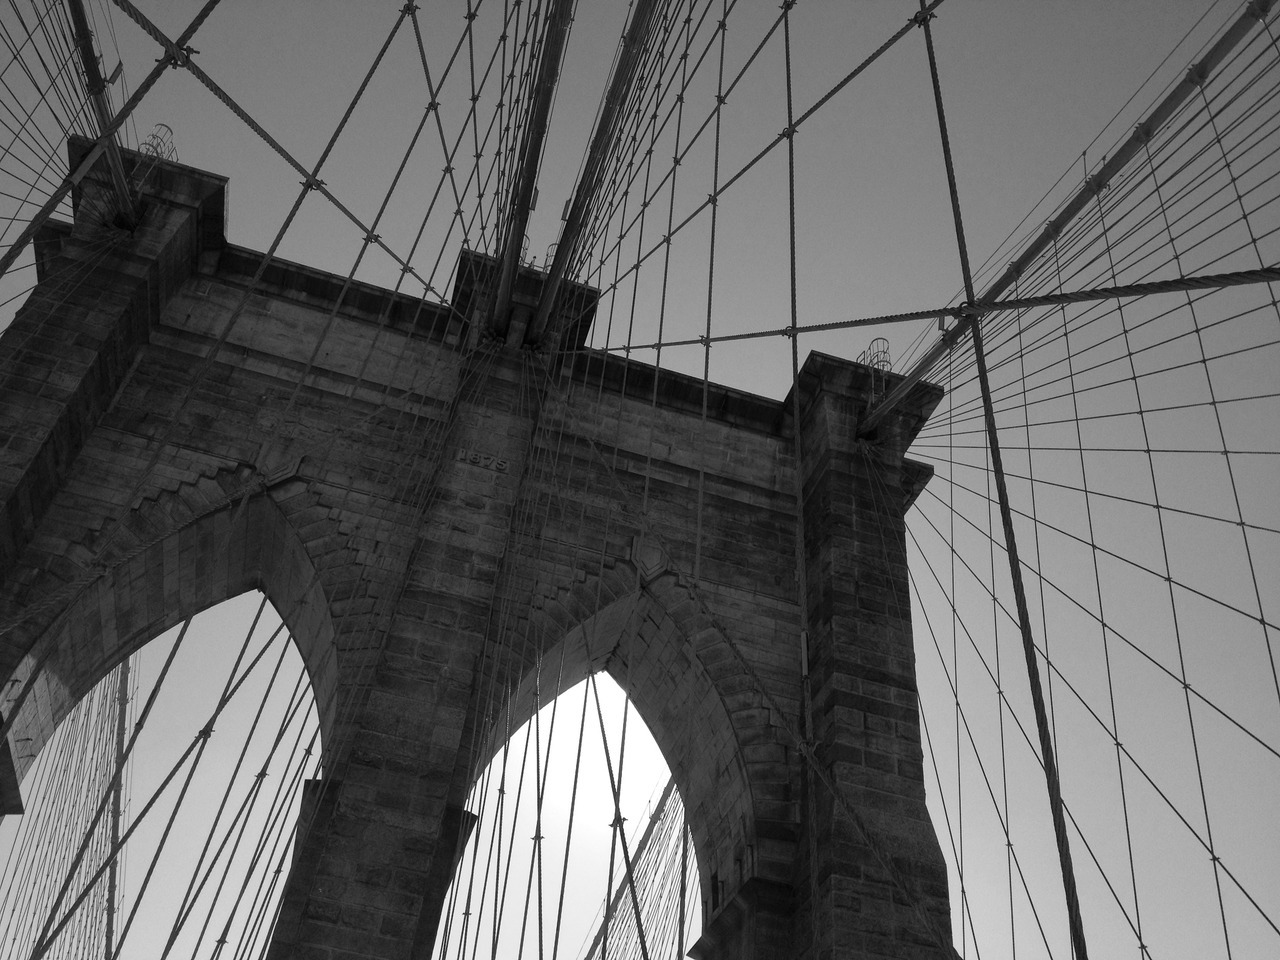 5 bridge run: manhattan to brooklynbrooklyn bridge, nyc 11:00 am, 50° 15 miles